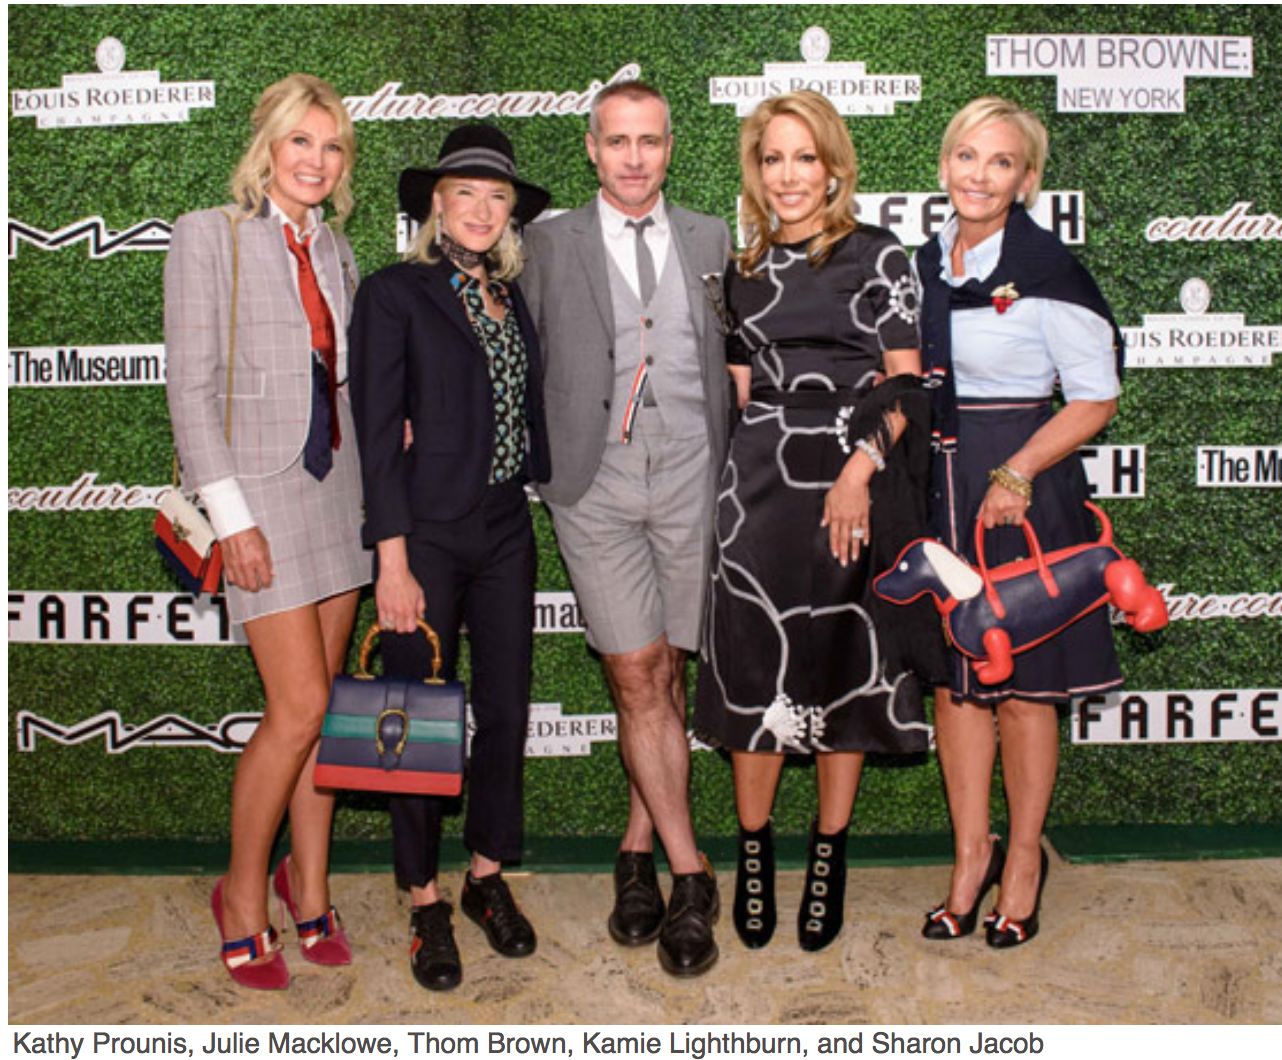 New York Fashion Week The kick-off to this week-long revelry of style and commerce is The Couture Council Luncheon and Award for the Artistry of Fashion. Kathy Prounis, Julie Macklowe, Thom Brown,Kami3e Lightburn, Sharon Jacob